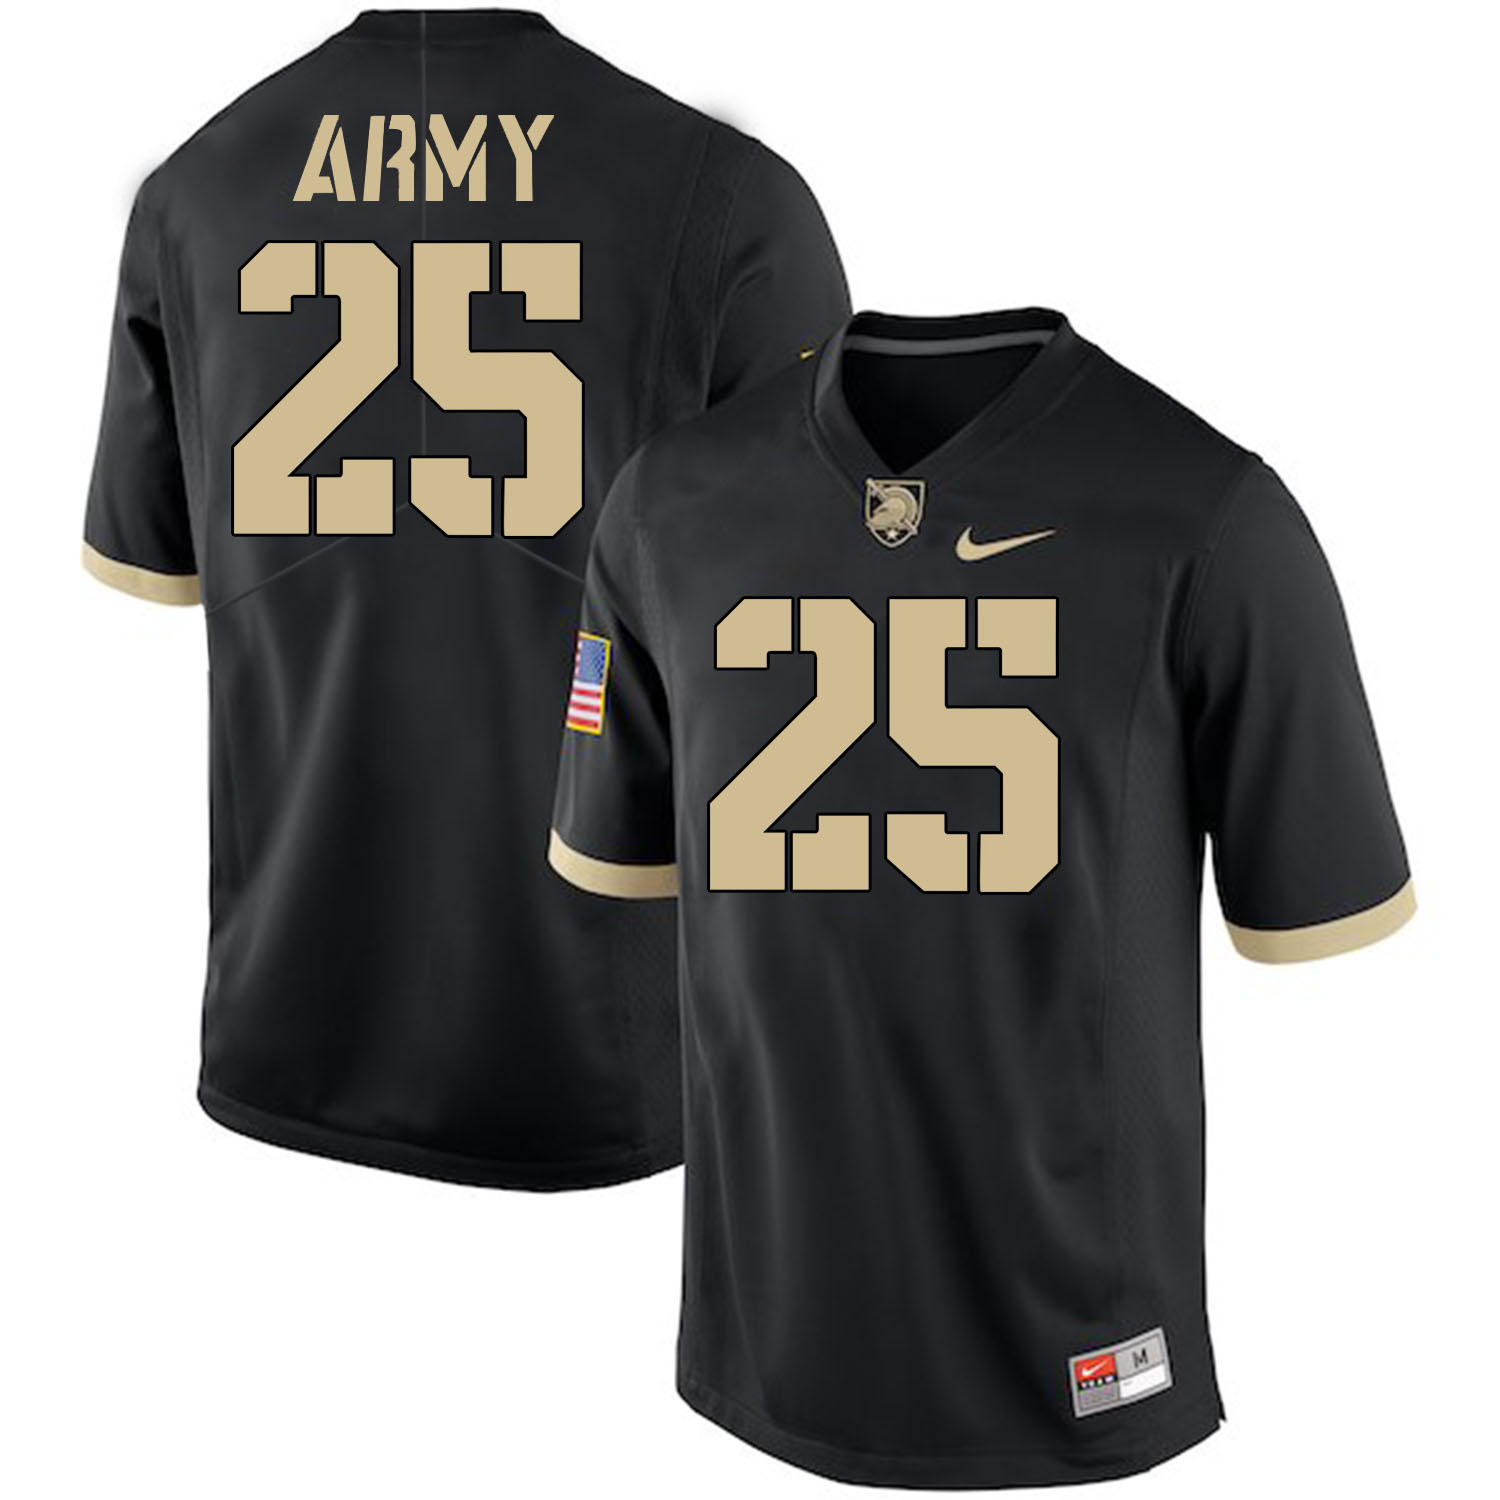 Army Black Knights 25 Connor Slomka Black College Football Jersey